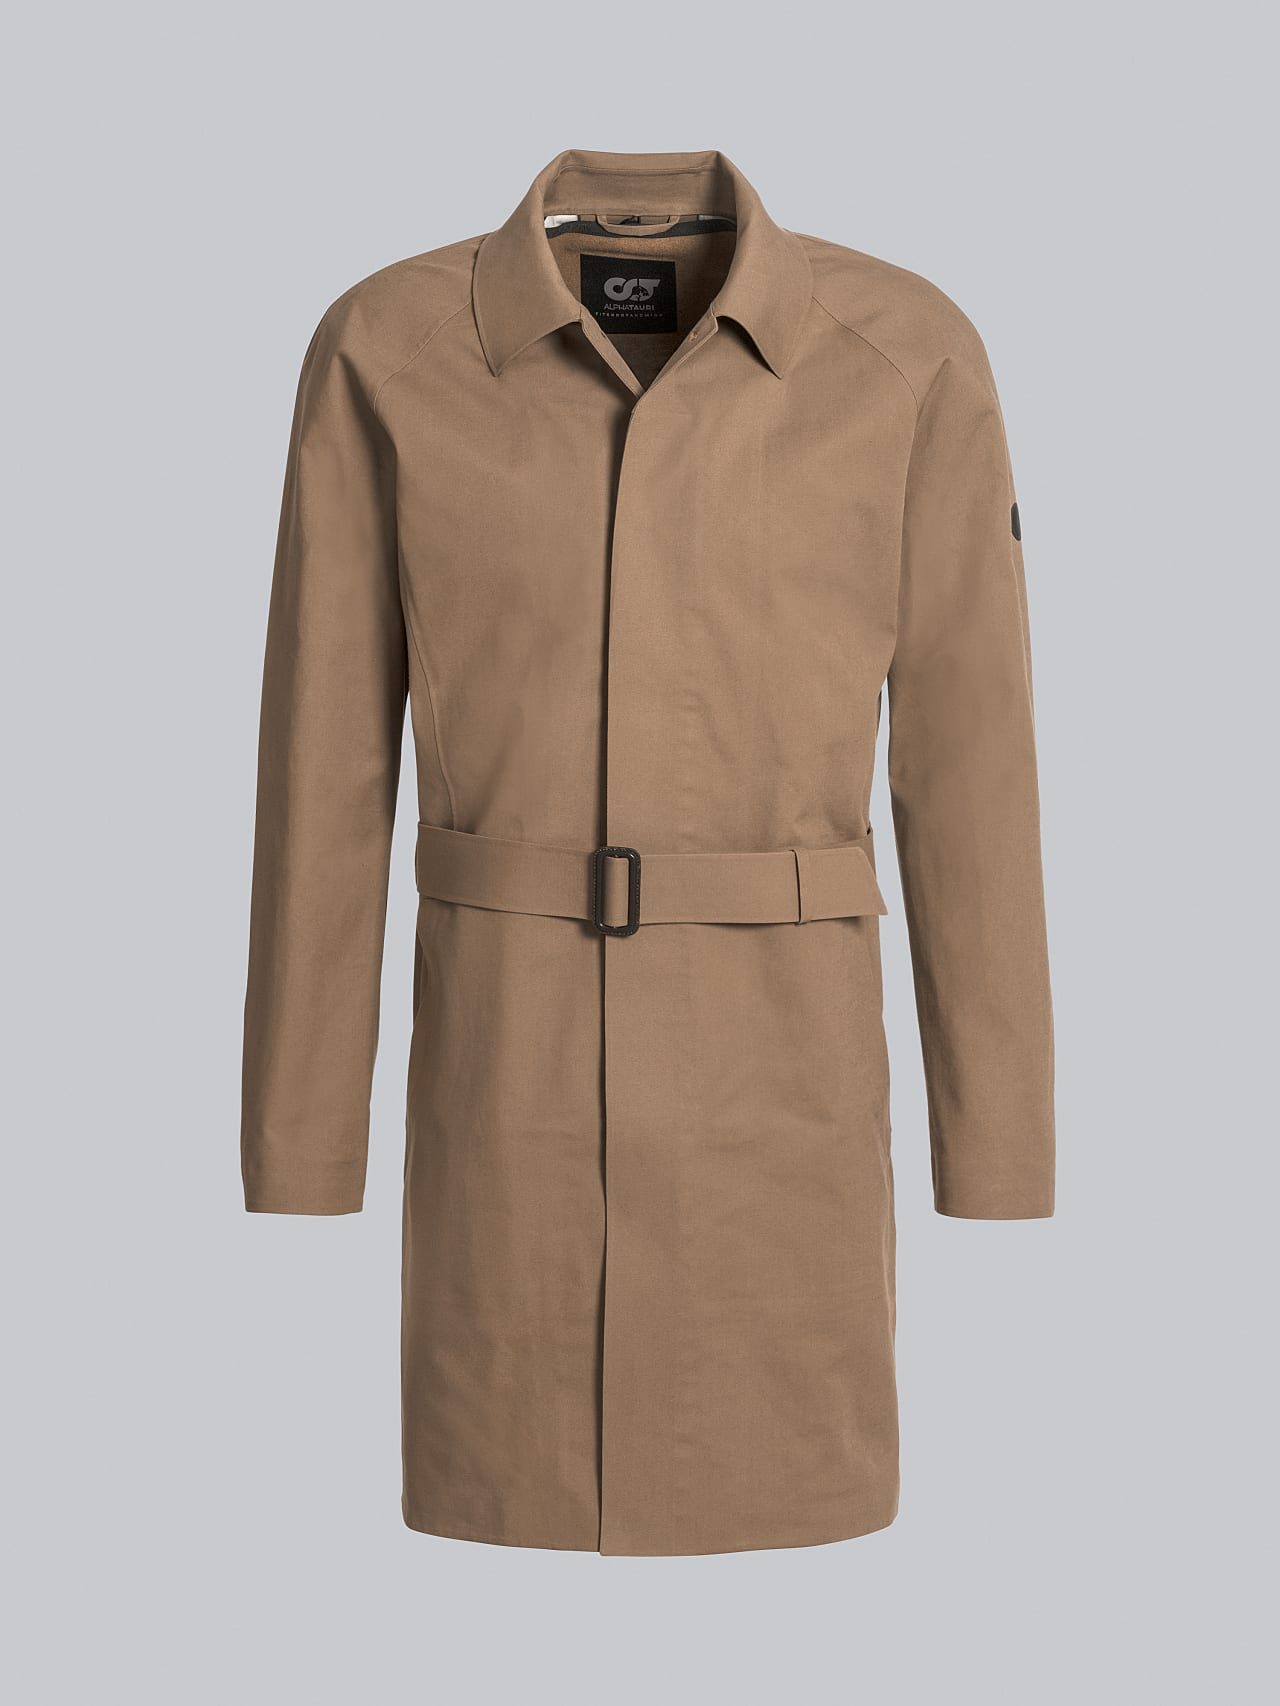 OMANA V1.Y5.02 Packable and Waterproof Trench Coat gold Back Alpha Tauri